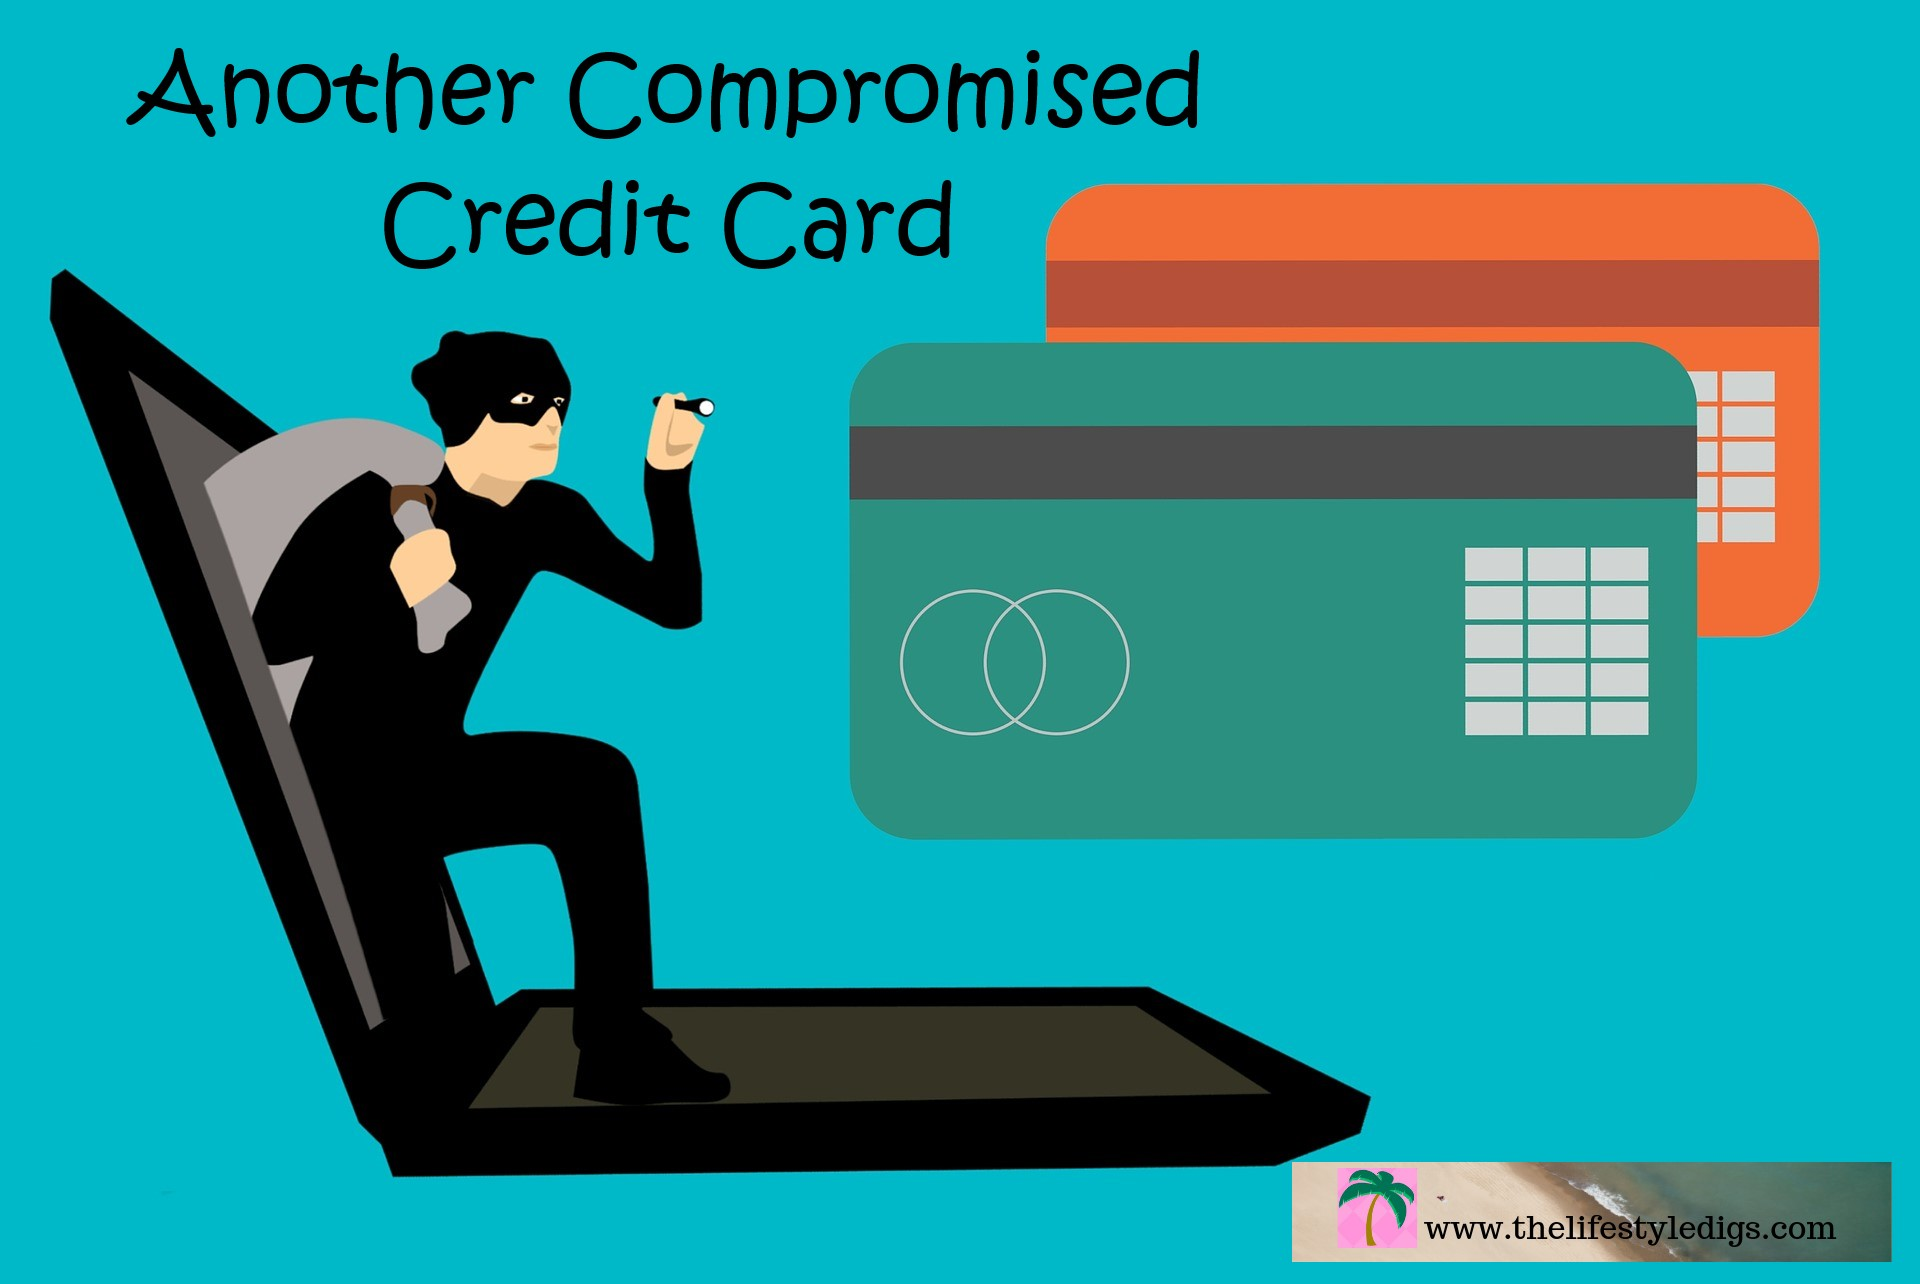 Another Compromised Credit Card!